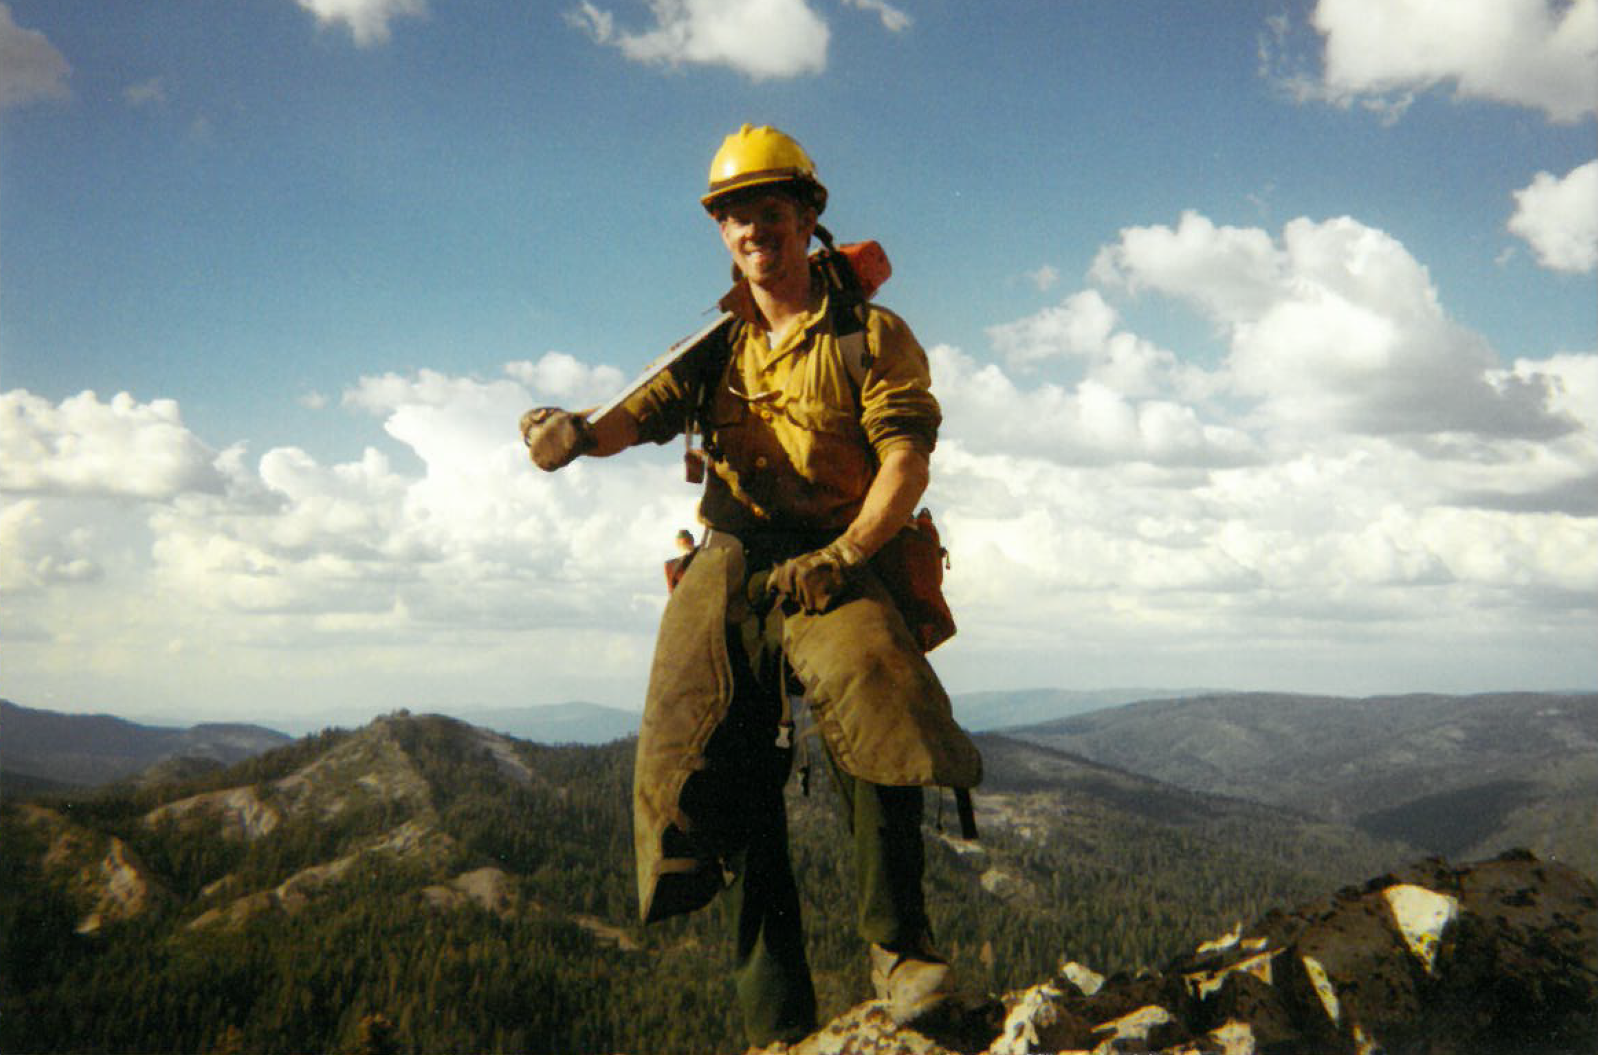 Mike Kennard. 2003. Plumas National Forest.